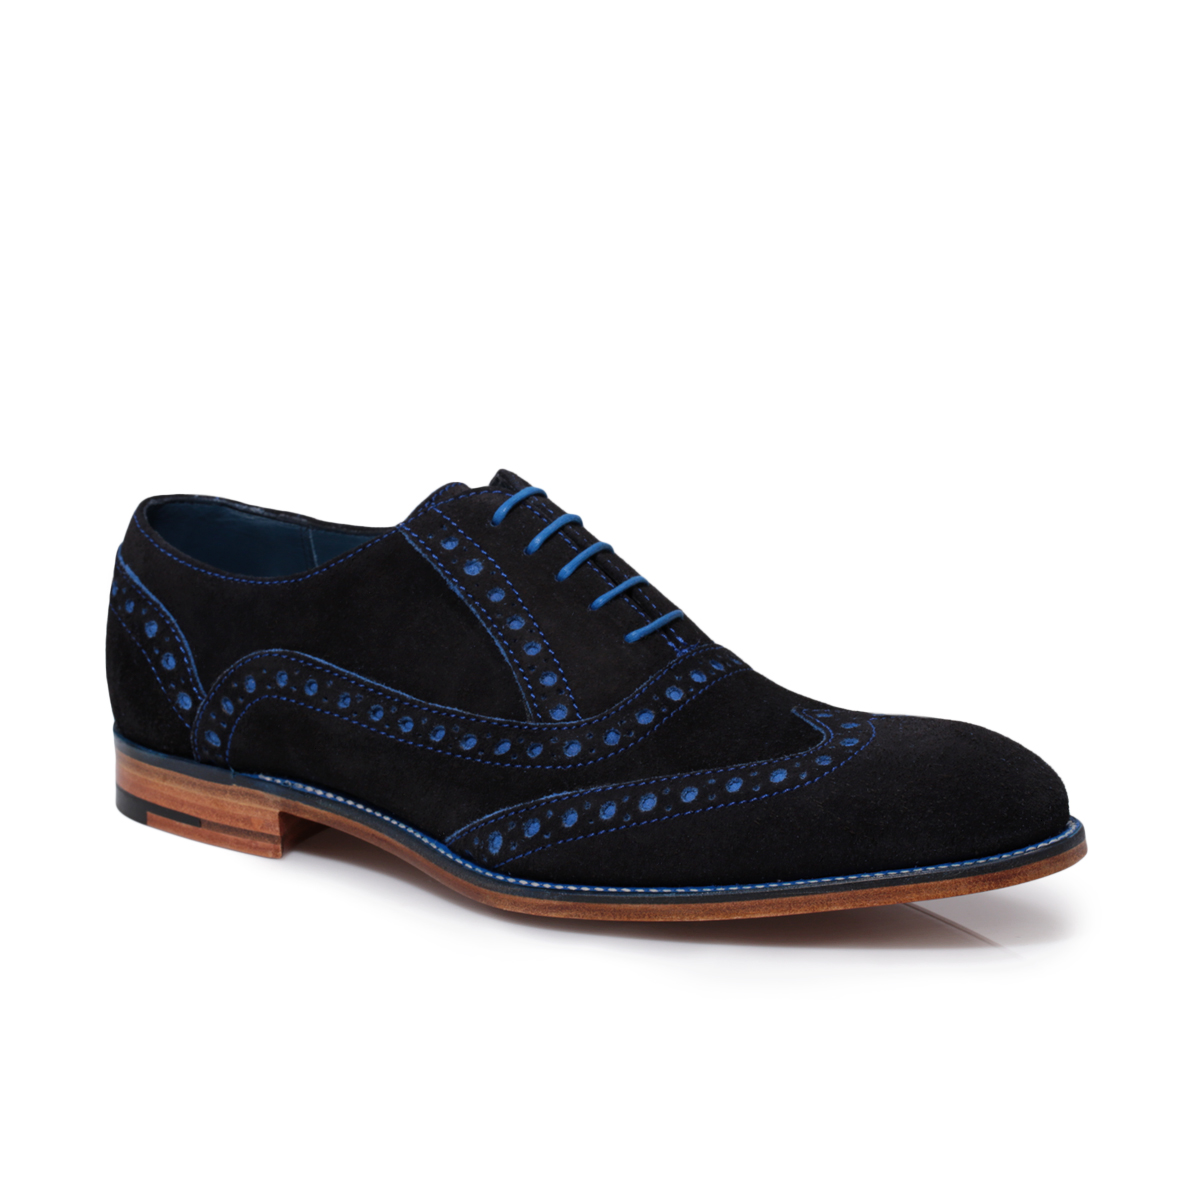 Barker-Grant-Navy-Blue-Suede-Leather-Mens-Brogue-Shoes-Size-7-11